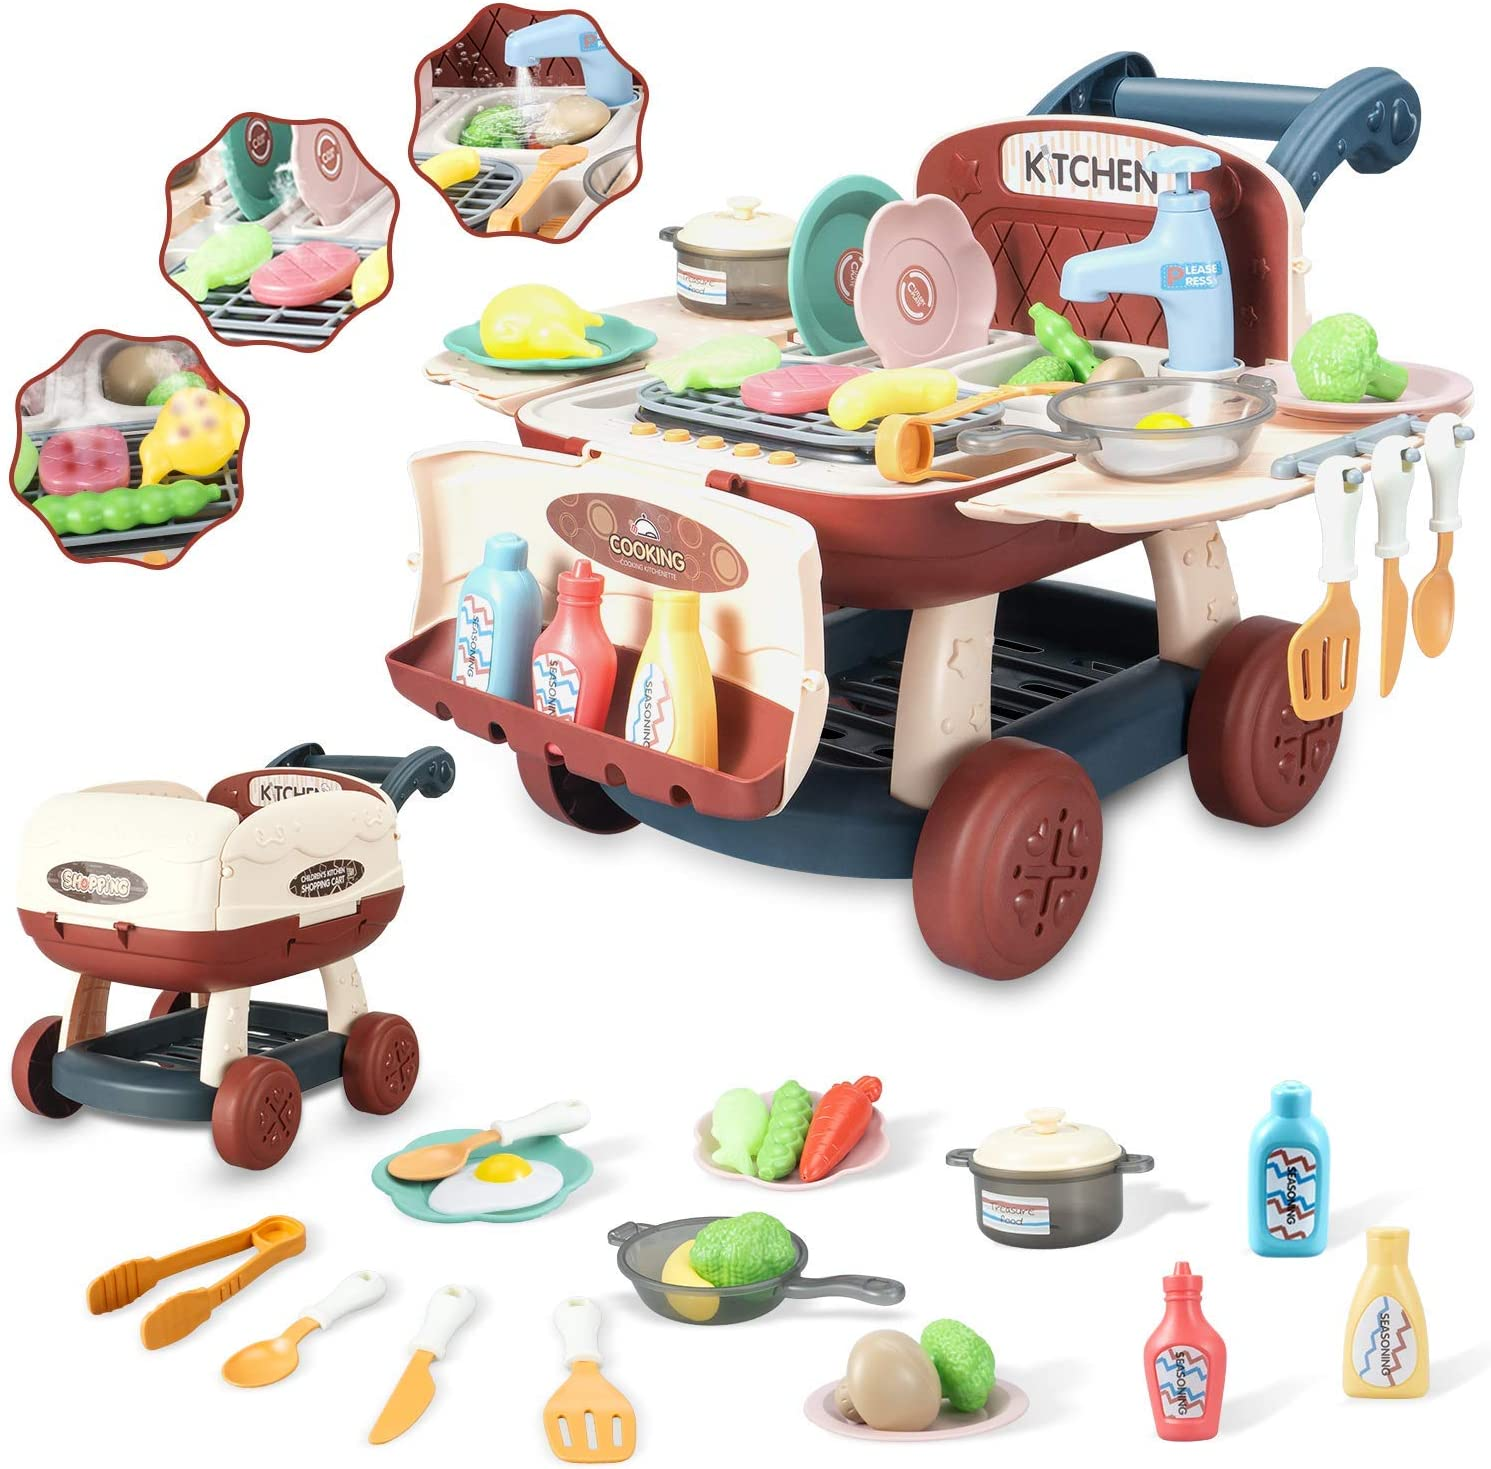 Ainek Kids Kitchen Playset - Can Transform as Shopping Cart - Pretend Cooking with Lights & Music, Toy Oven Cookware Sink, Color Changing Play Food, Gift Toys for 3 4 5 6 Year Old Boys Girls